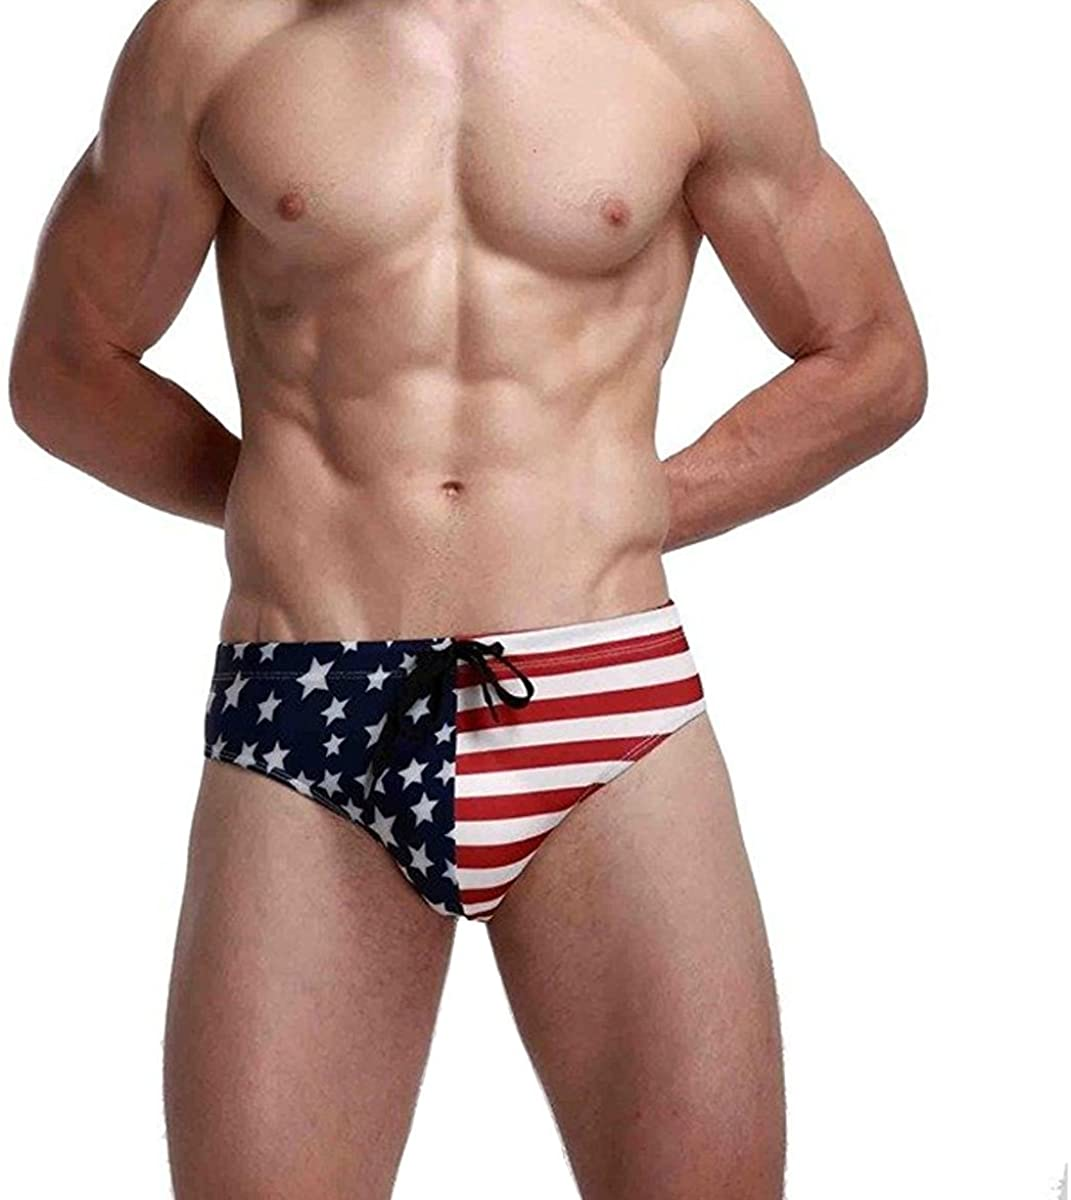 Banana Bucket Men's America Flag Stars Low Rise Swimwear Bikini Briefs Beach Swimsuit